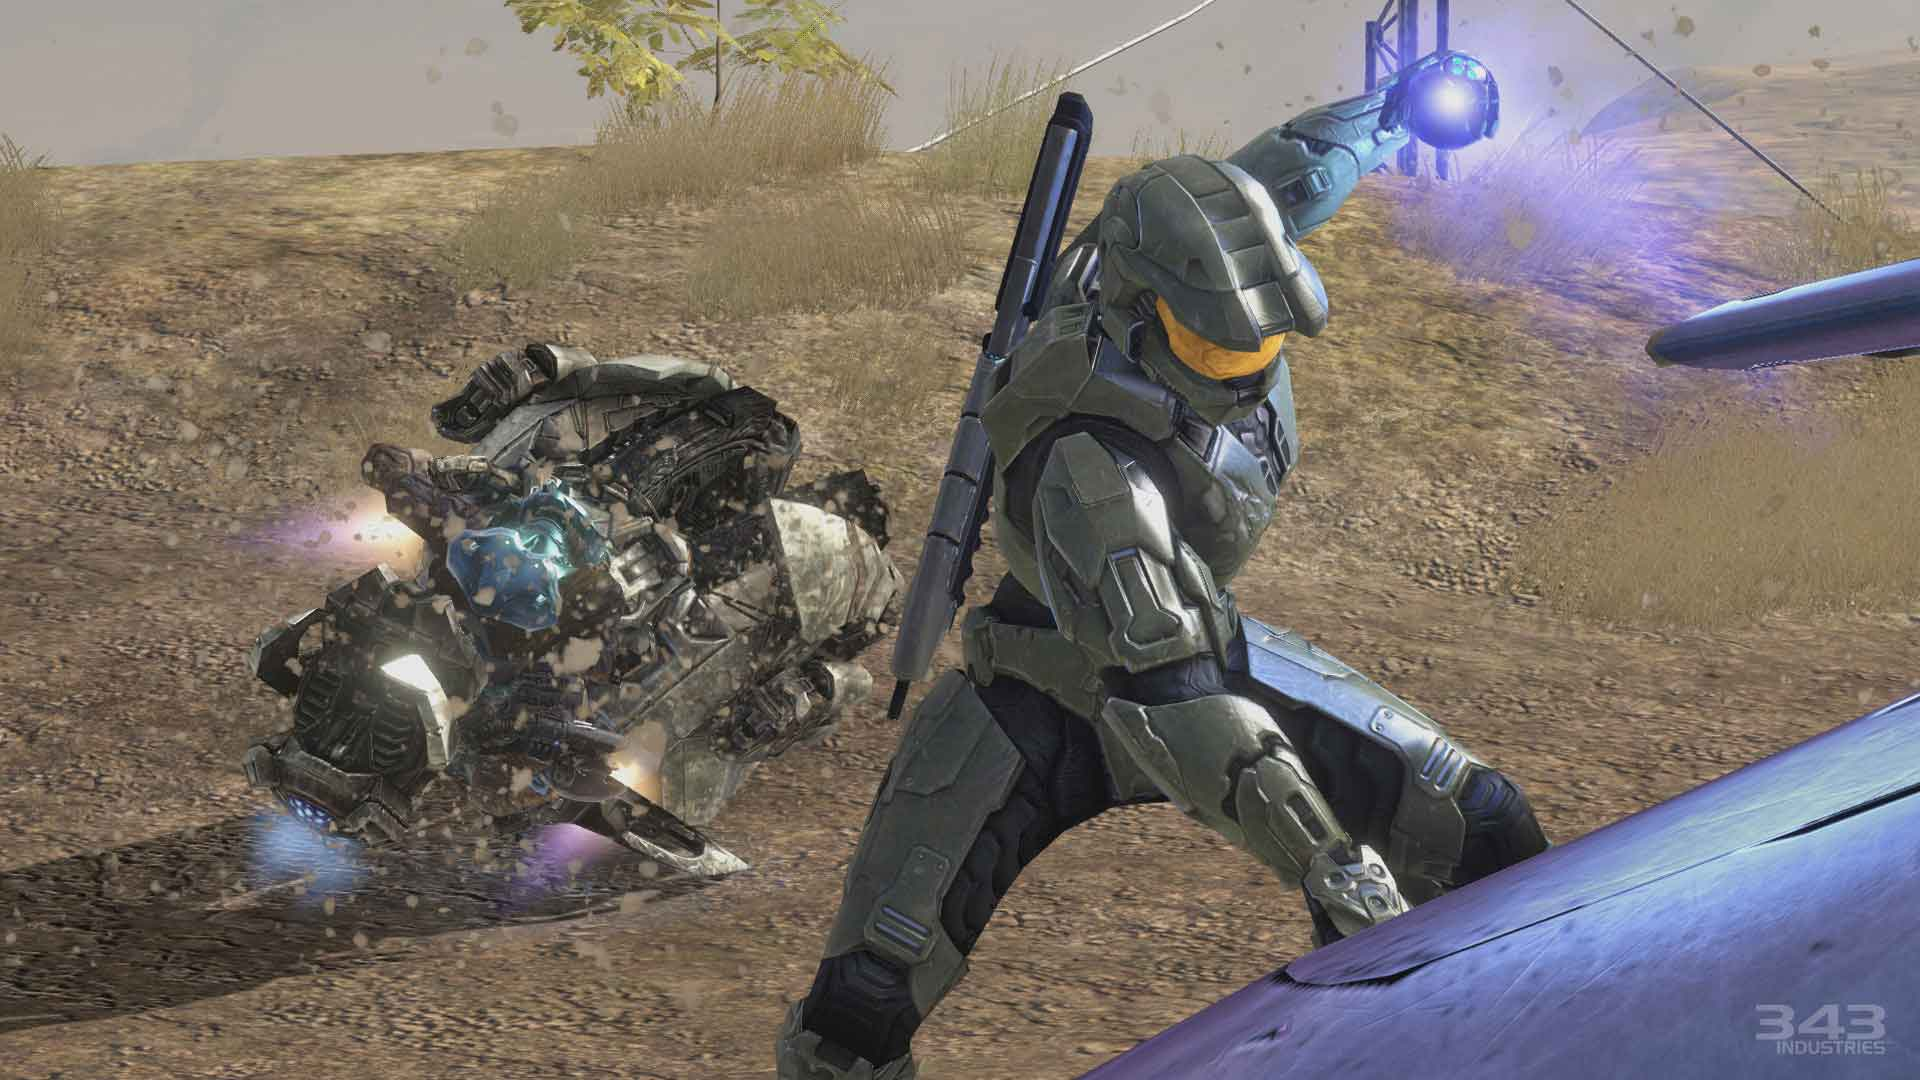 Halo: The Master Chief Collection Halo 3 PC